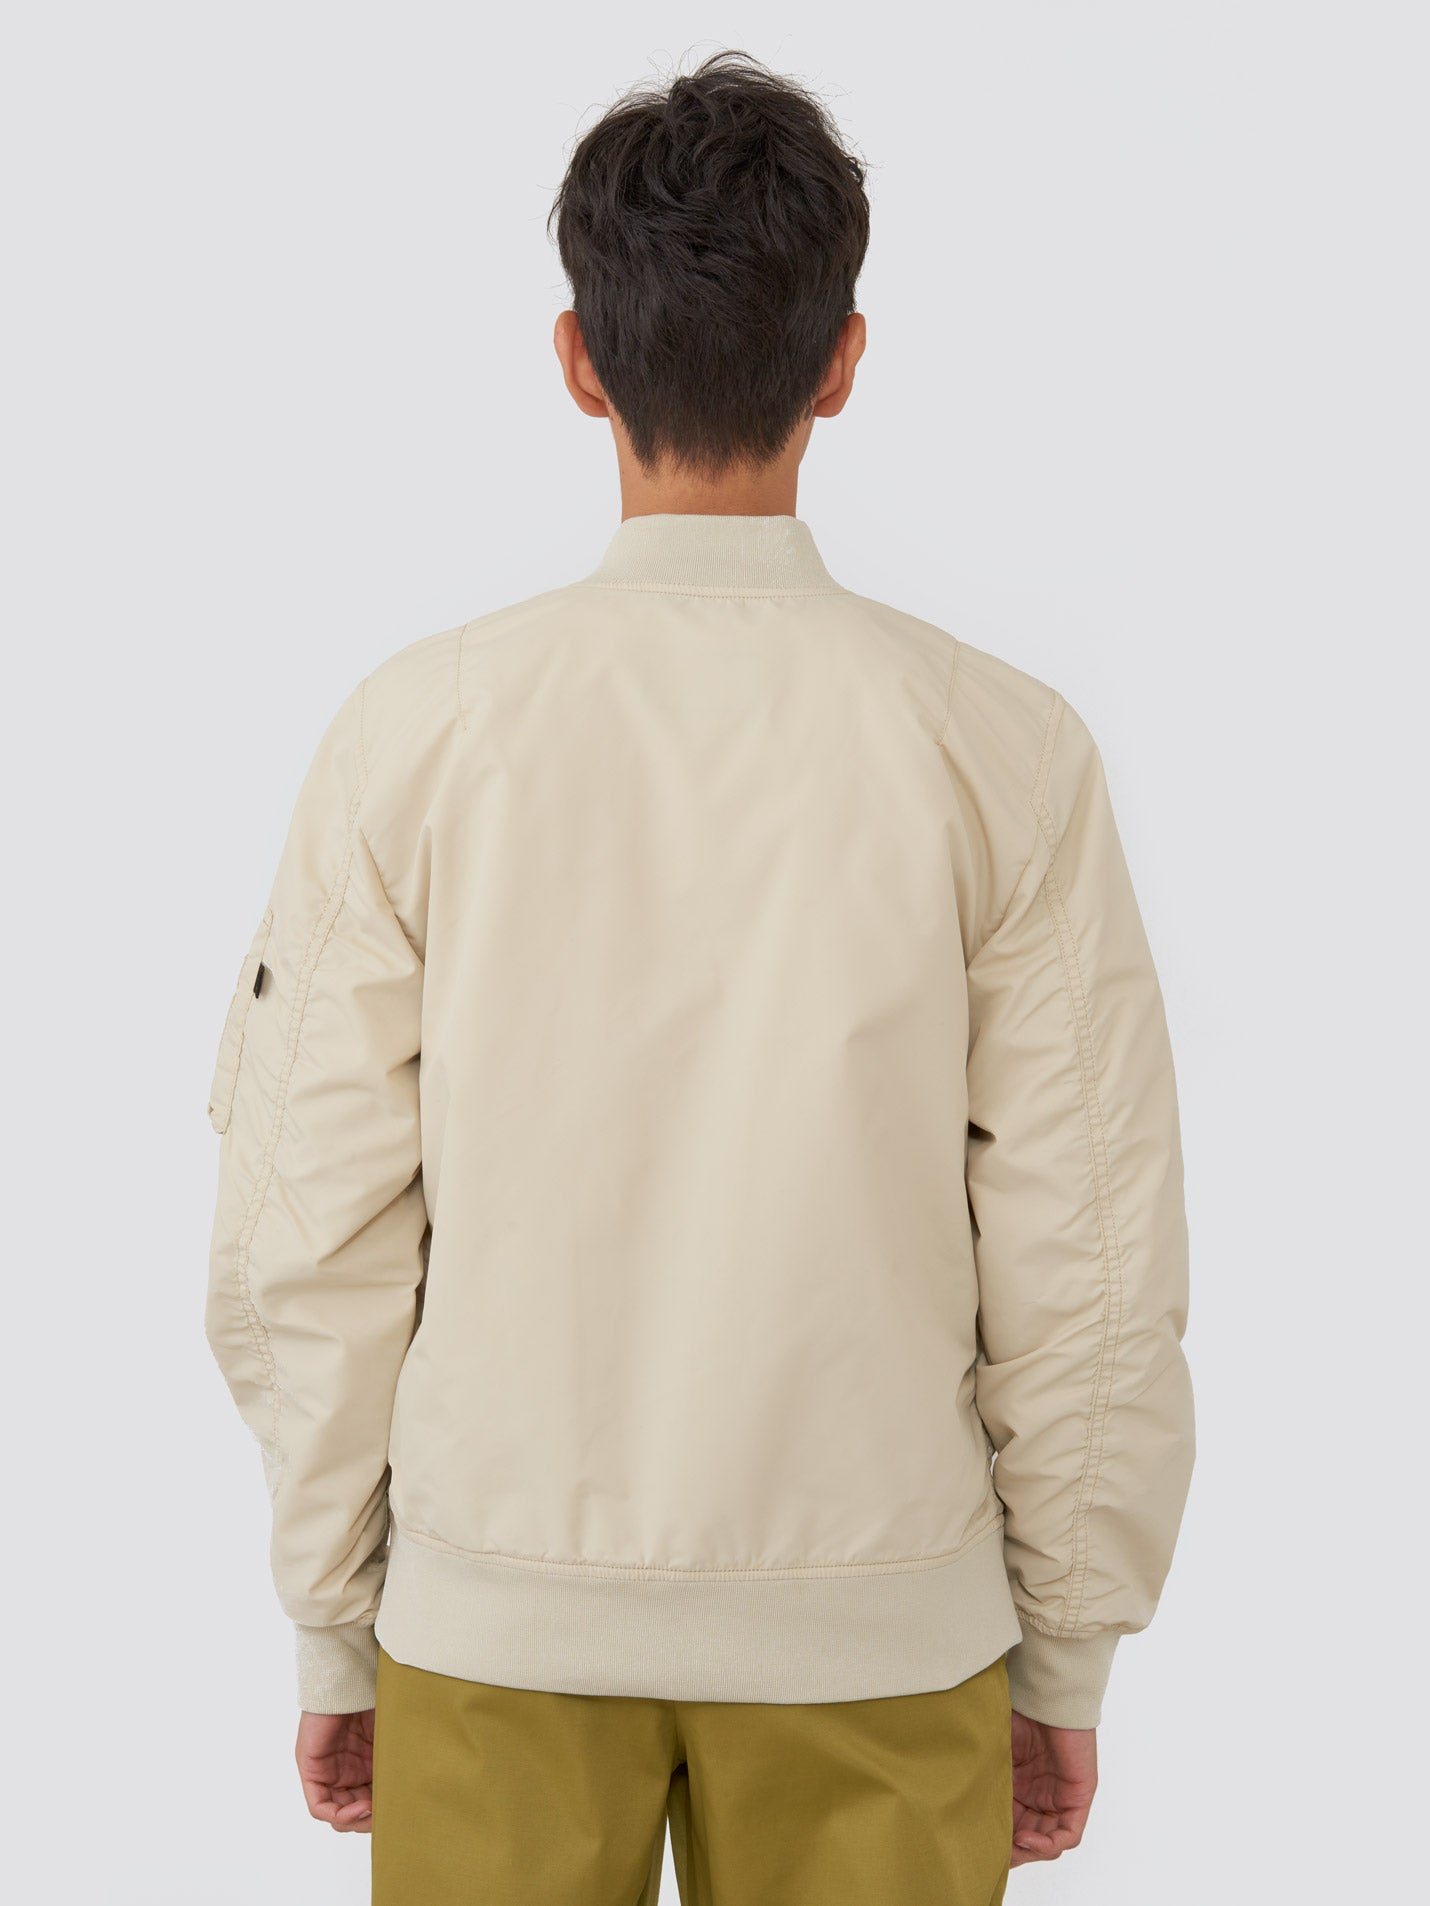 W L-2B SCOUT FLIGHT JACKET